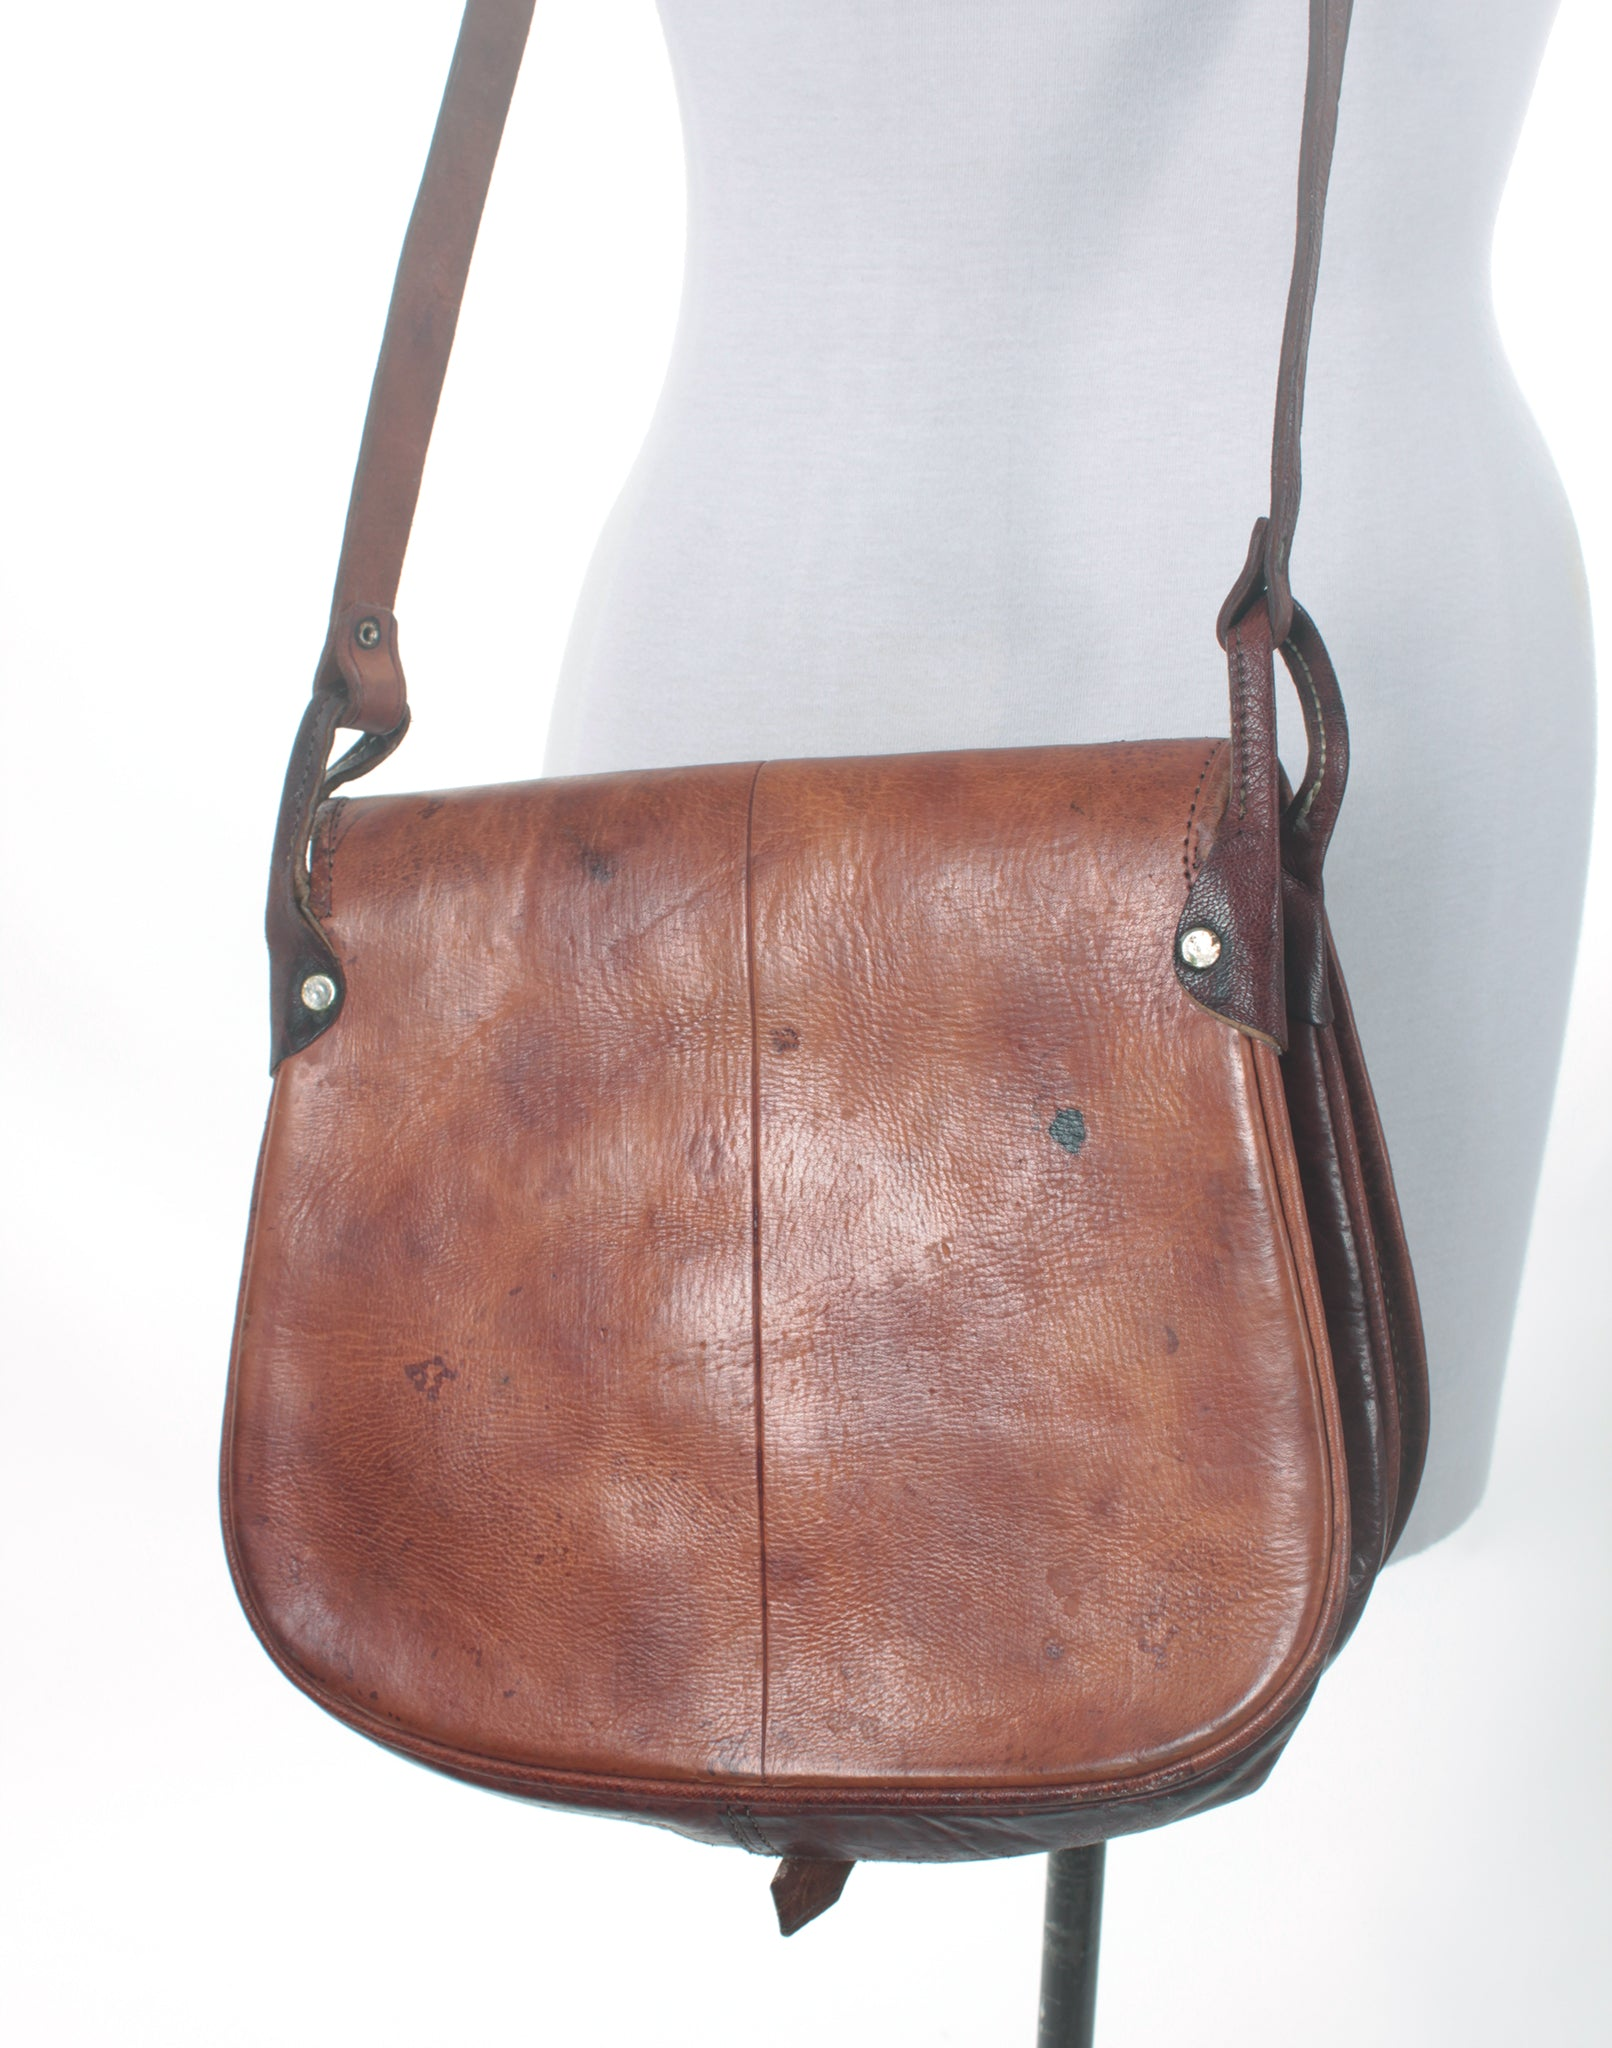 Vintage 70's Tooled Leather Crossbody Bag